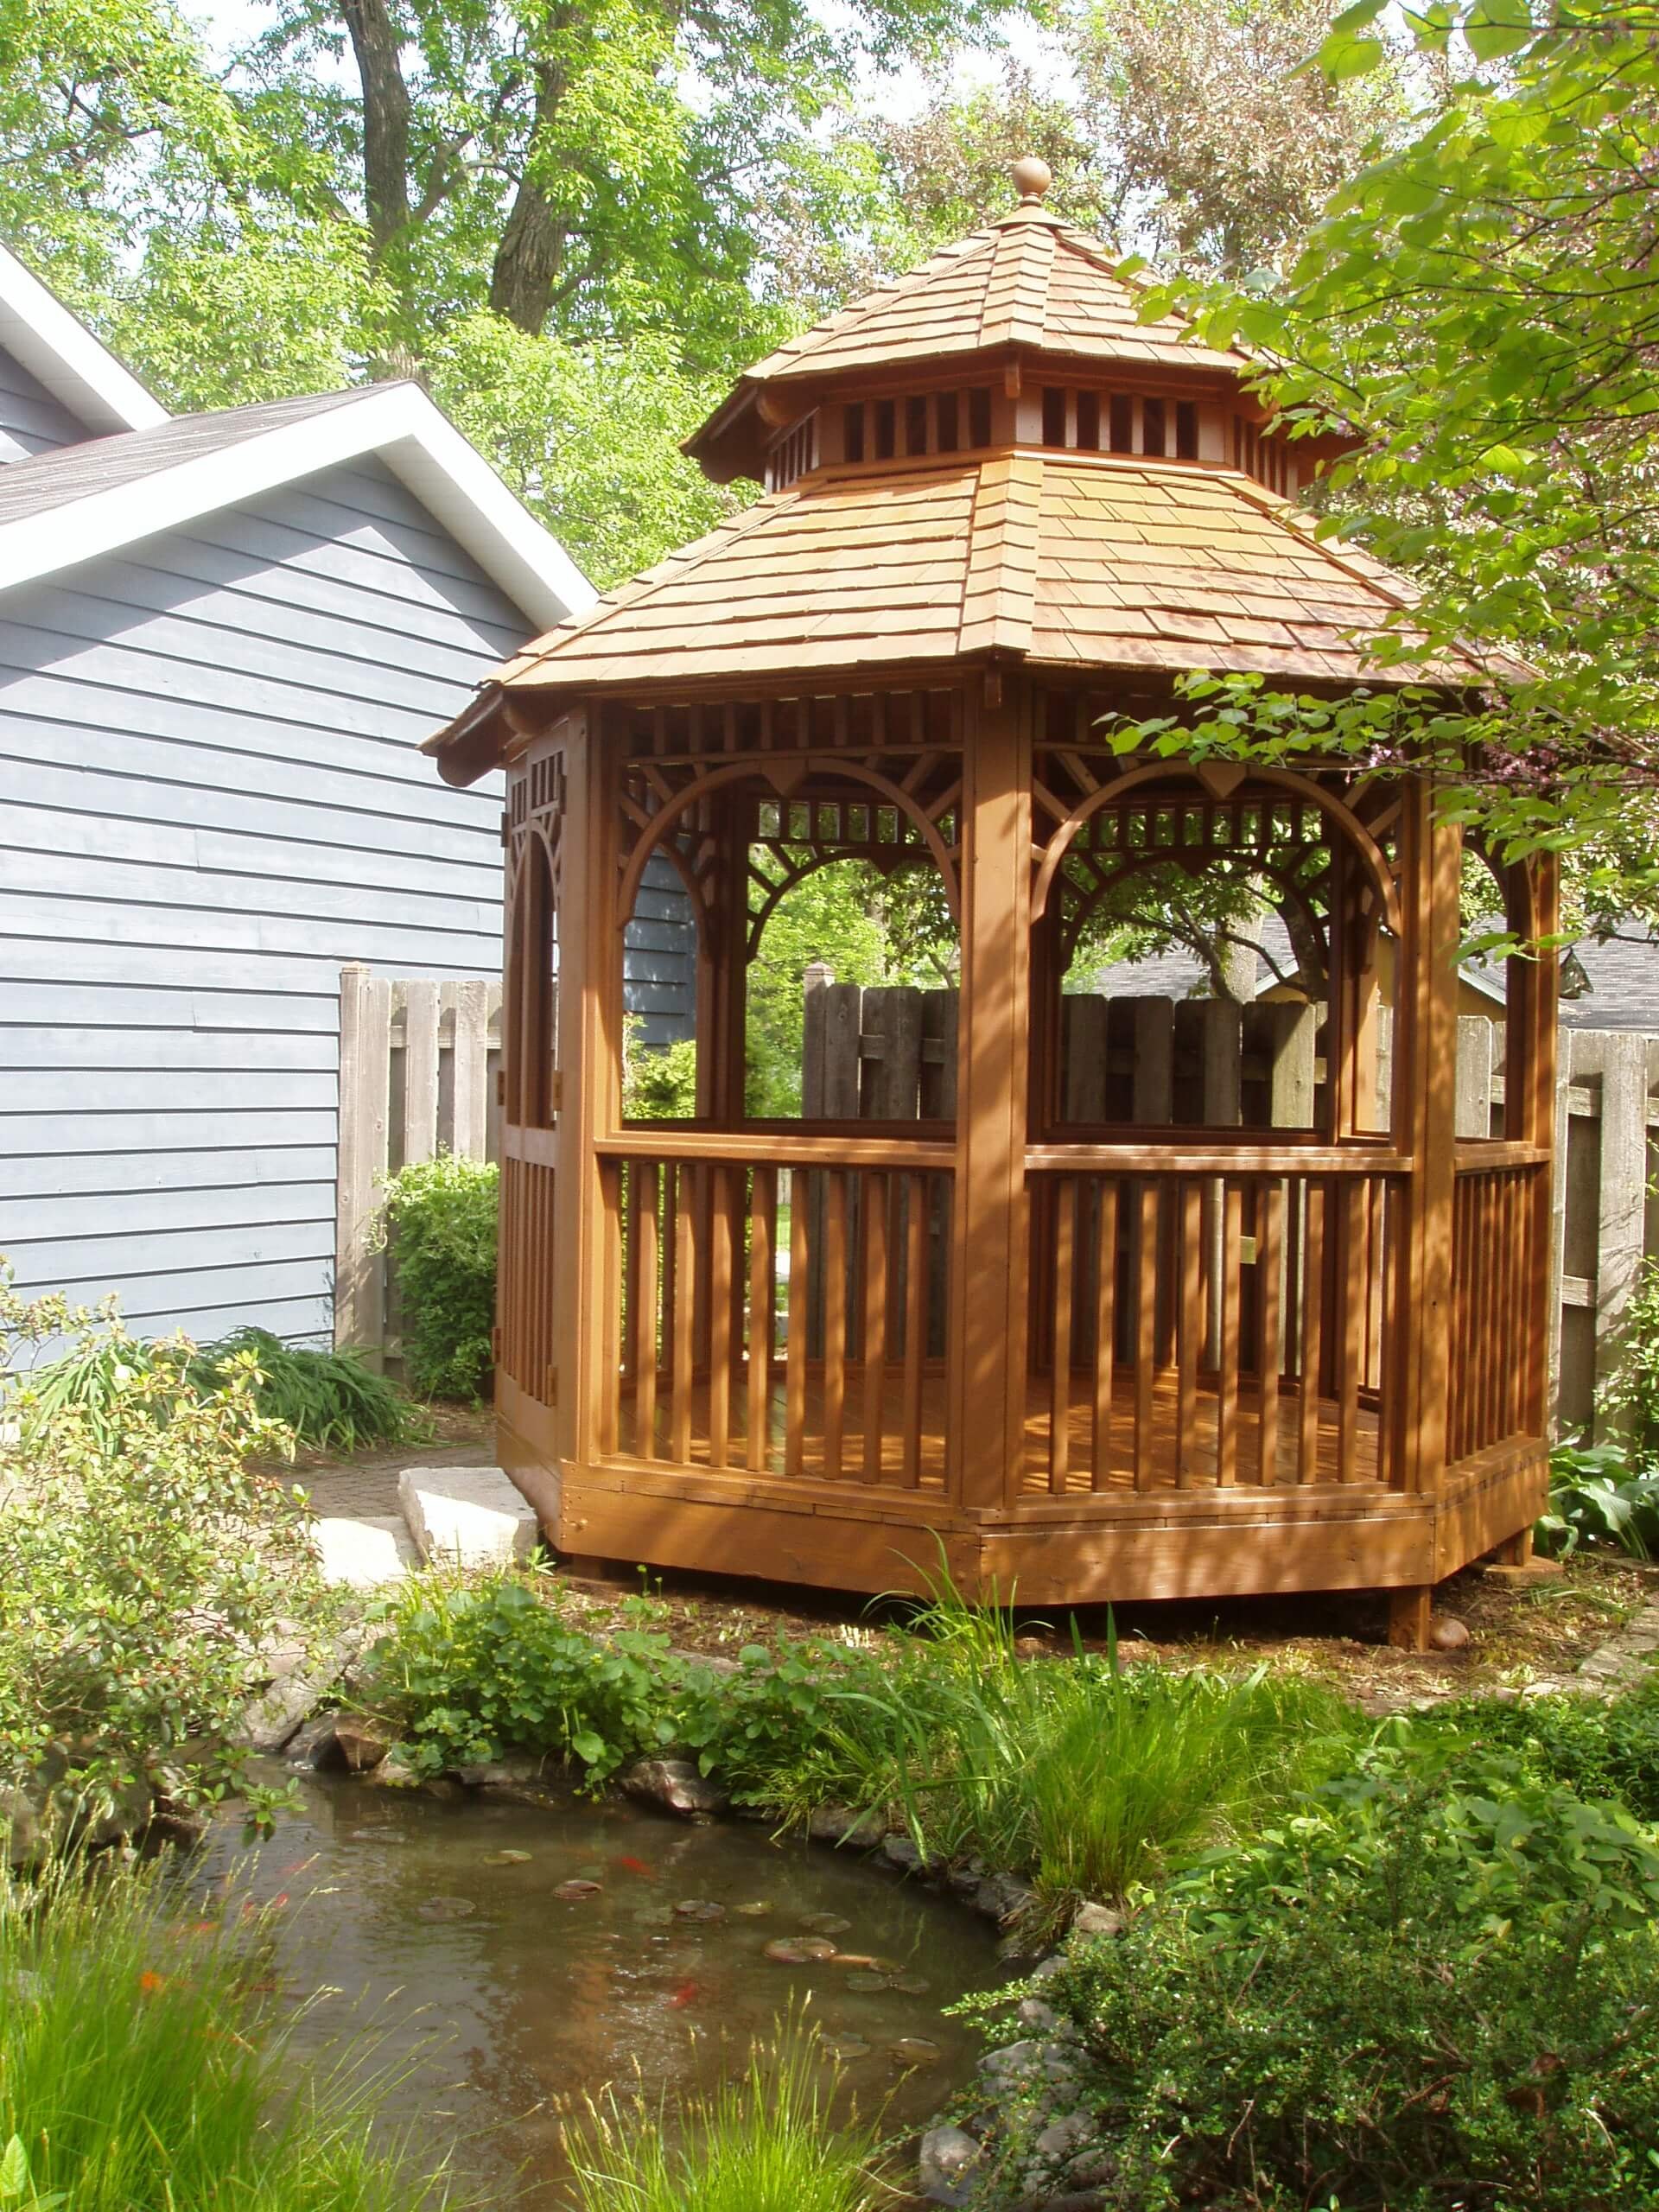 Outdoor gazebo that has recently been treated and is located adjacent to a pond